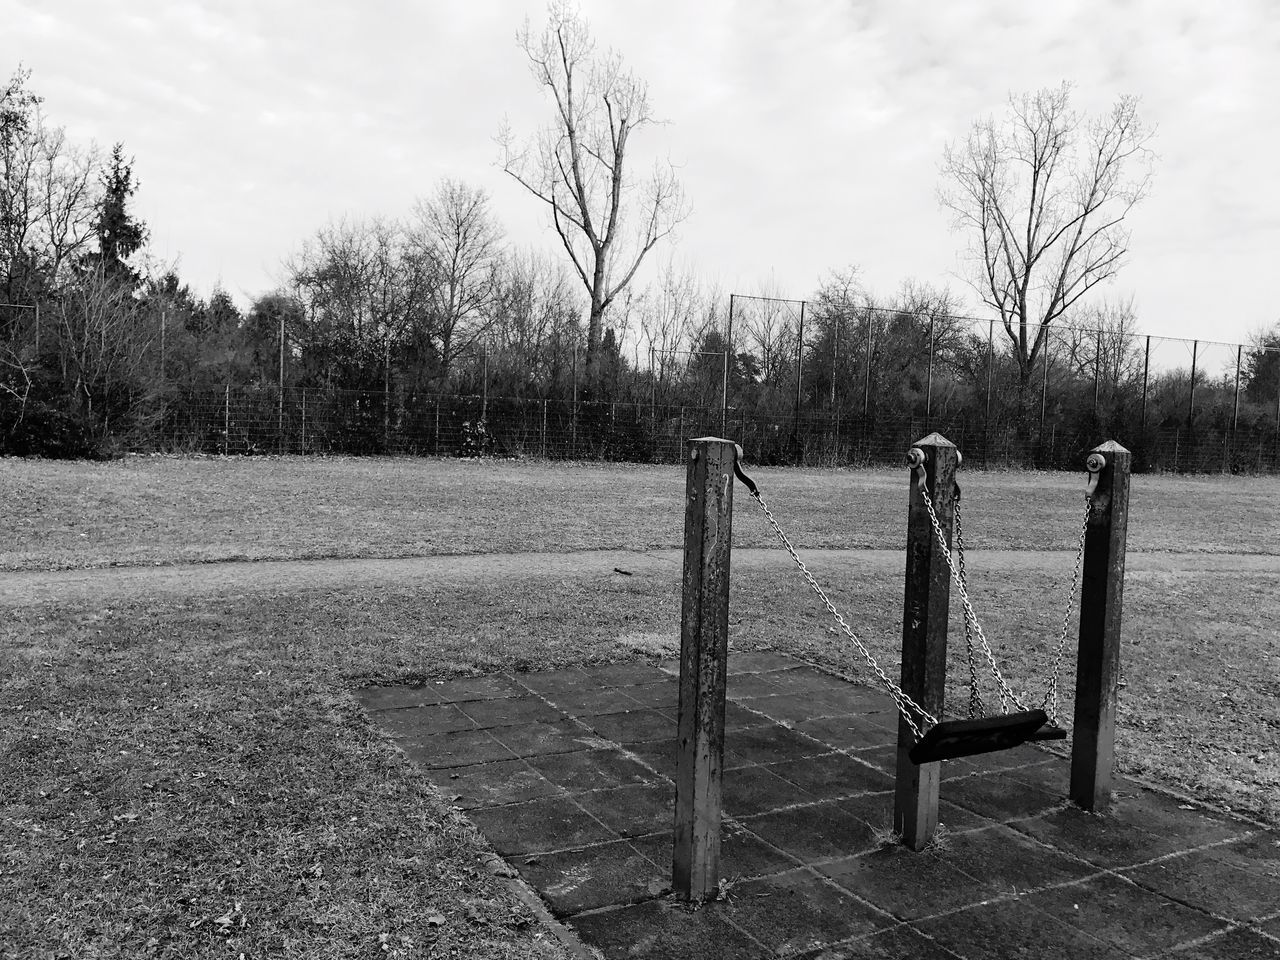 Left Places Rust Rusty Used Swing Swinging Sky Tree Outdoors No People Move Motion Blackandwhite Black And White Black & White Blackandwhite Photography Black And White Photography IPhone IPhoneography Iphone7 Postapocalyptic